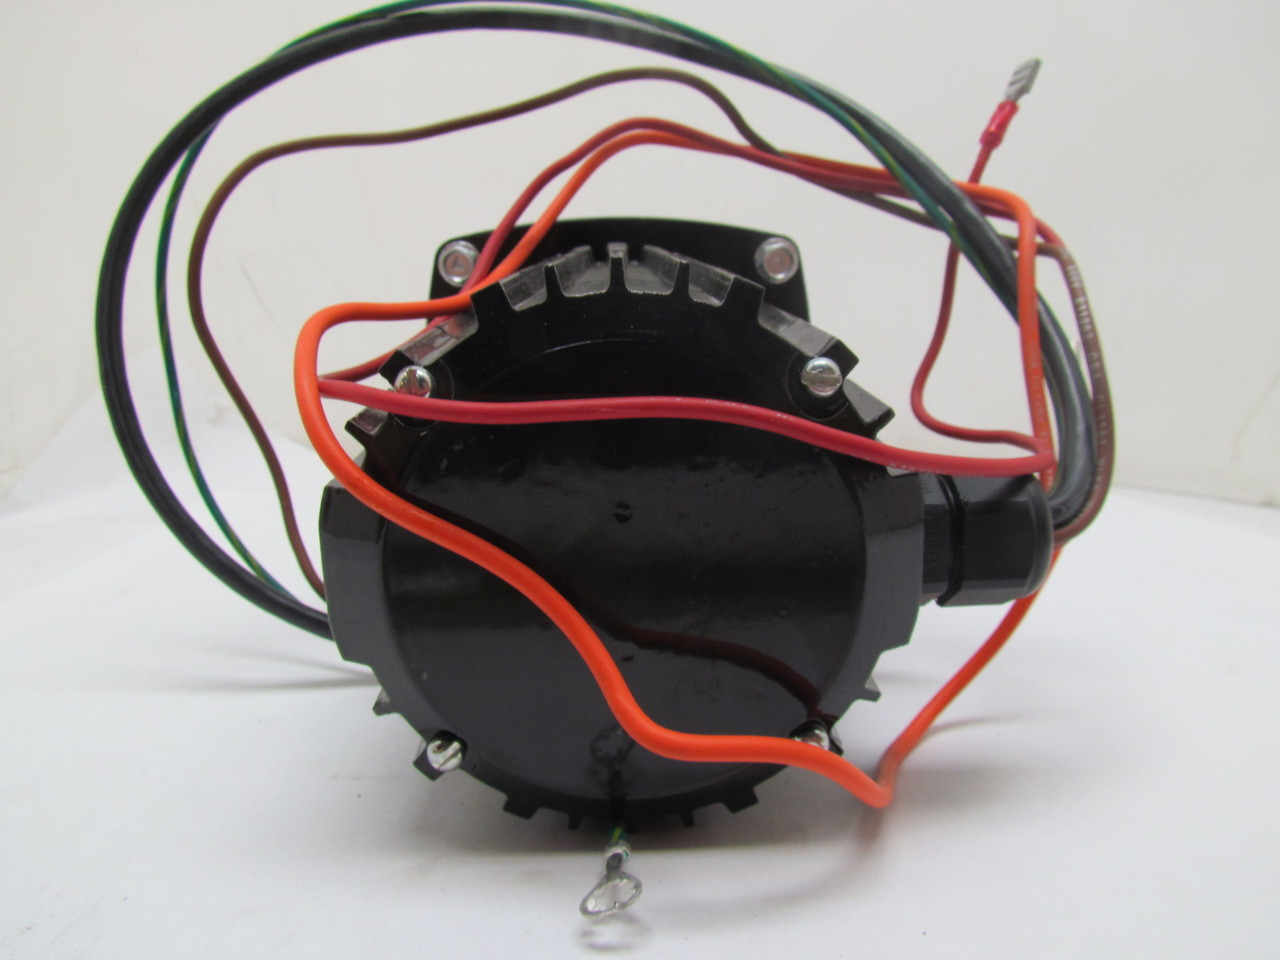 58762 bodine electric 34b6bebl f3 24v gearmotor 18amp 3 8hp 125rpm 201 ratio 9?resize\\\\\\\\\\\\\\\=665%2C499 bodine motor wiring diagram wiring diagram shrutiradio bodine bdl94c wiring diagram at n-0.co